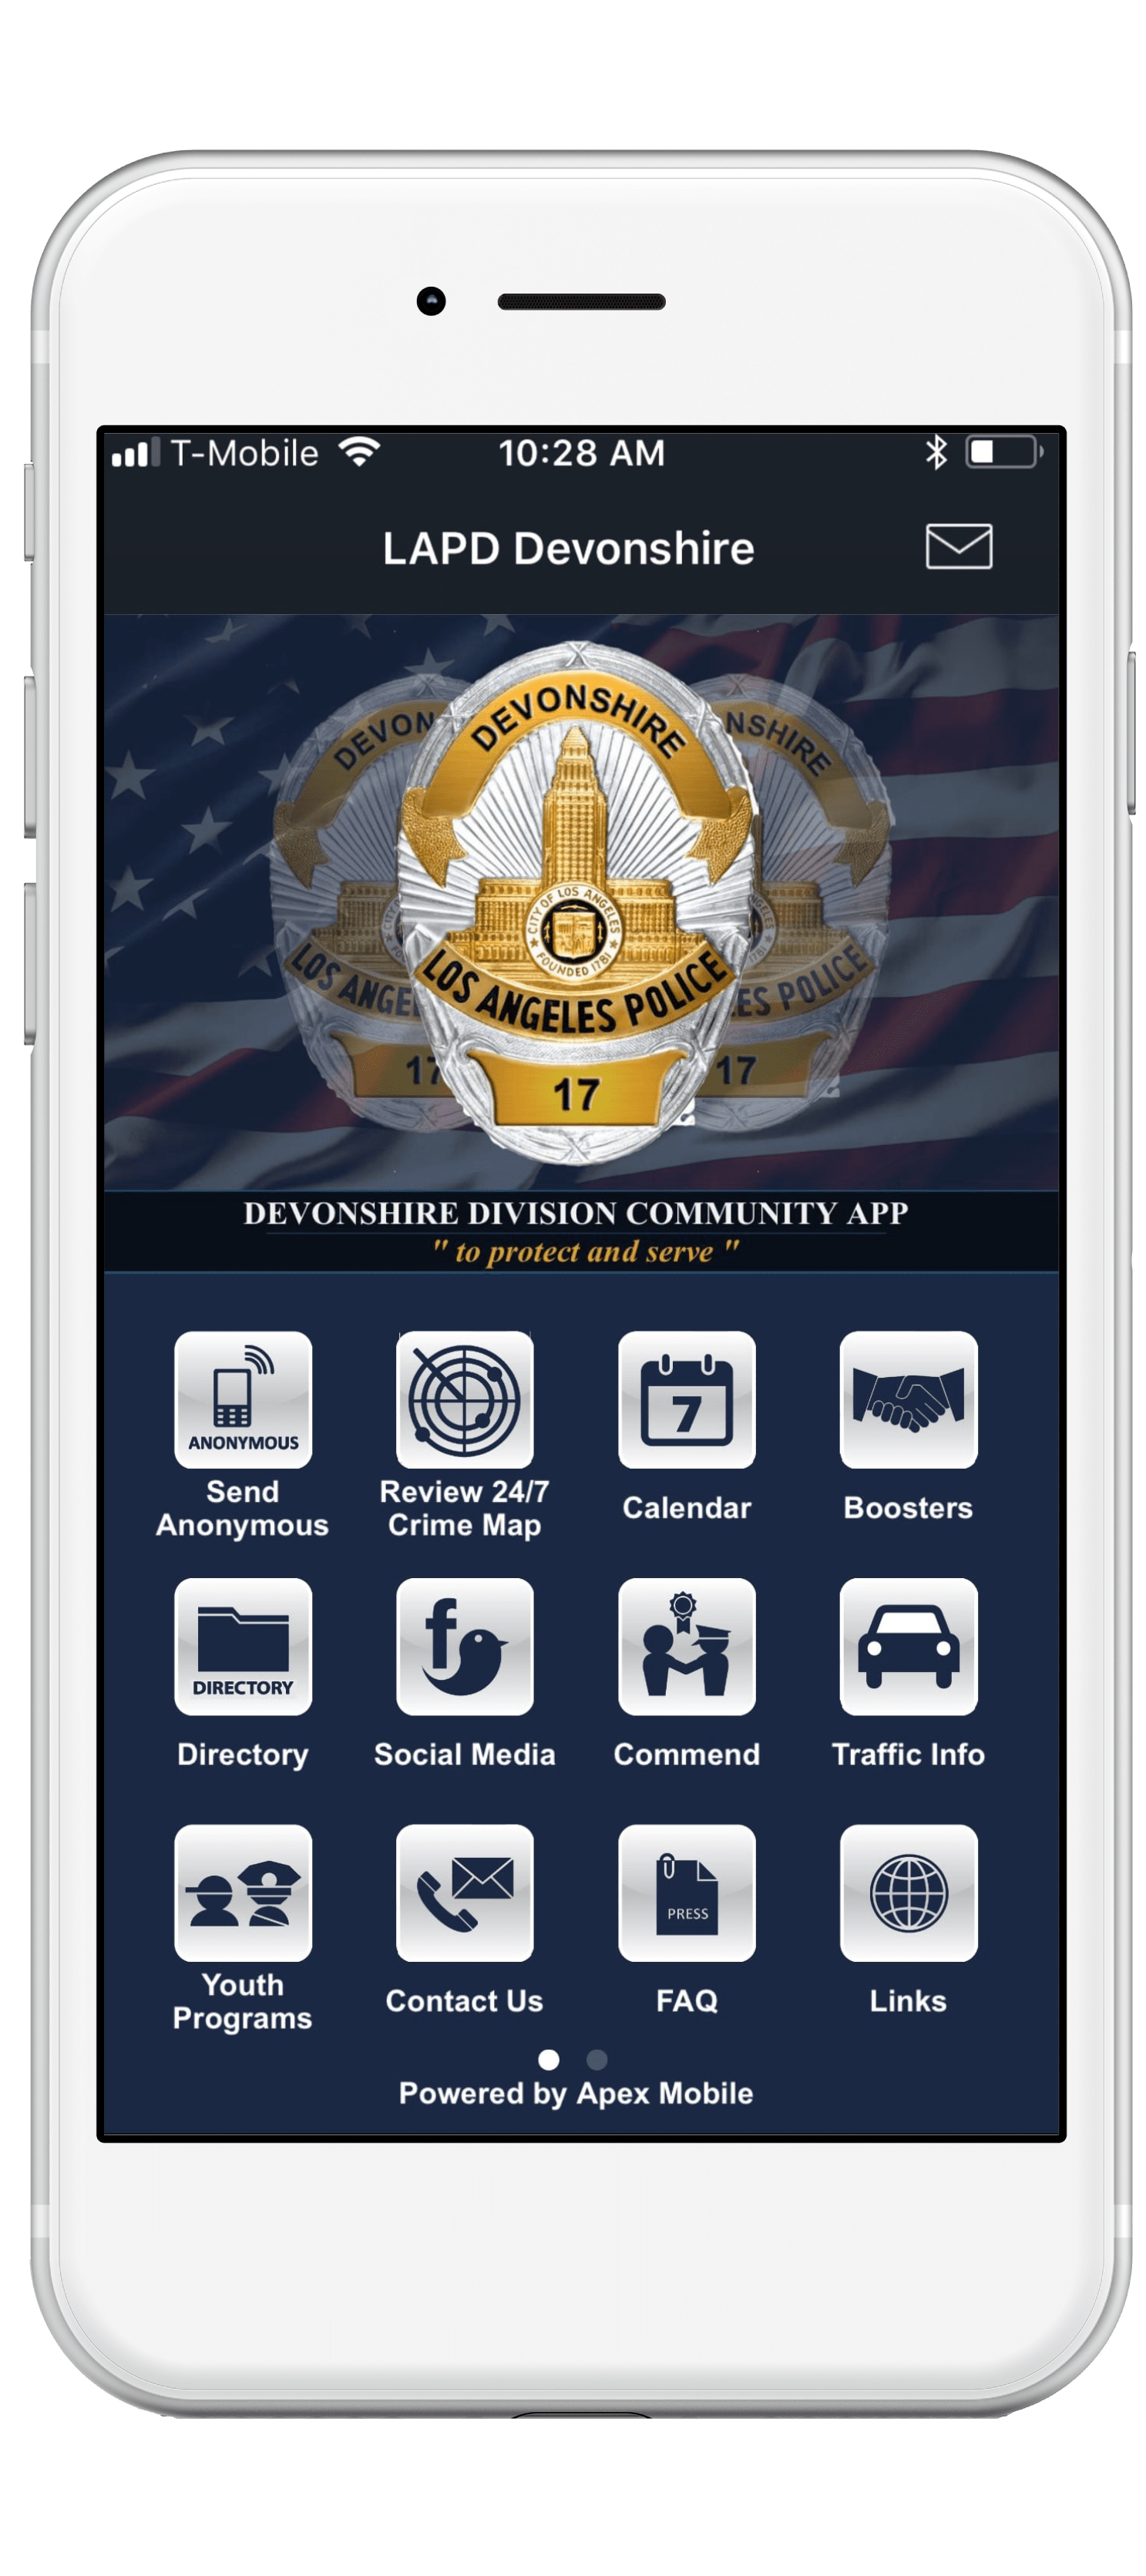 LAPD-Devonshire-mobile-app-screenshot-min